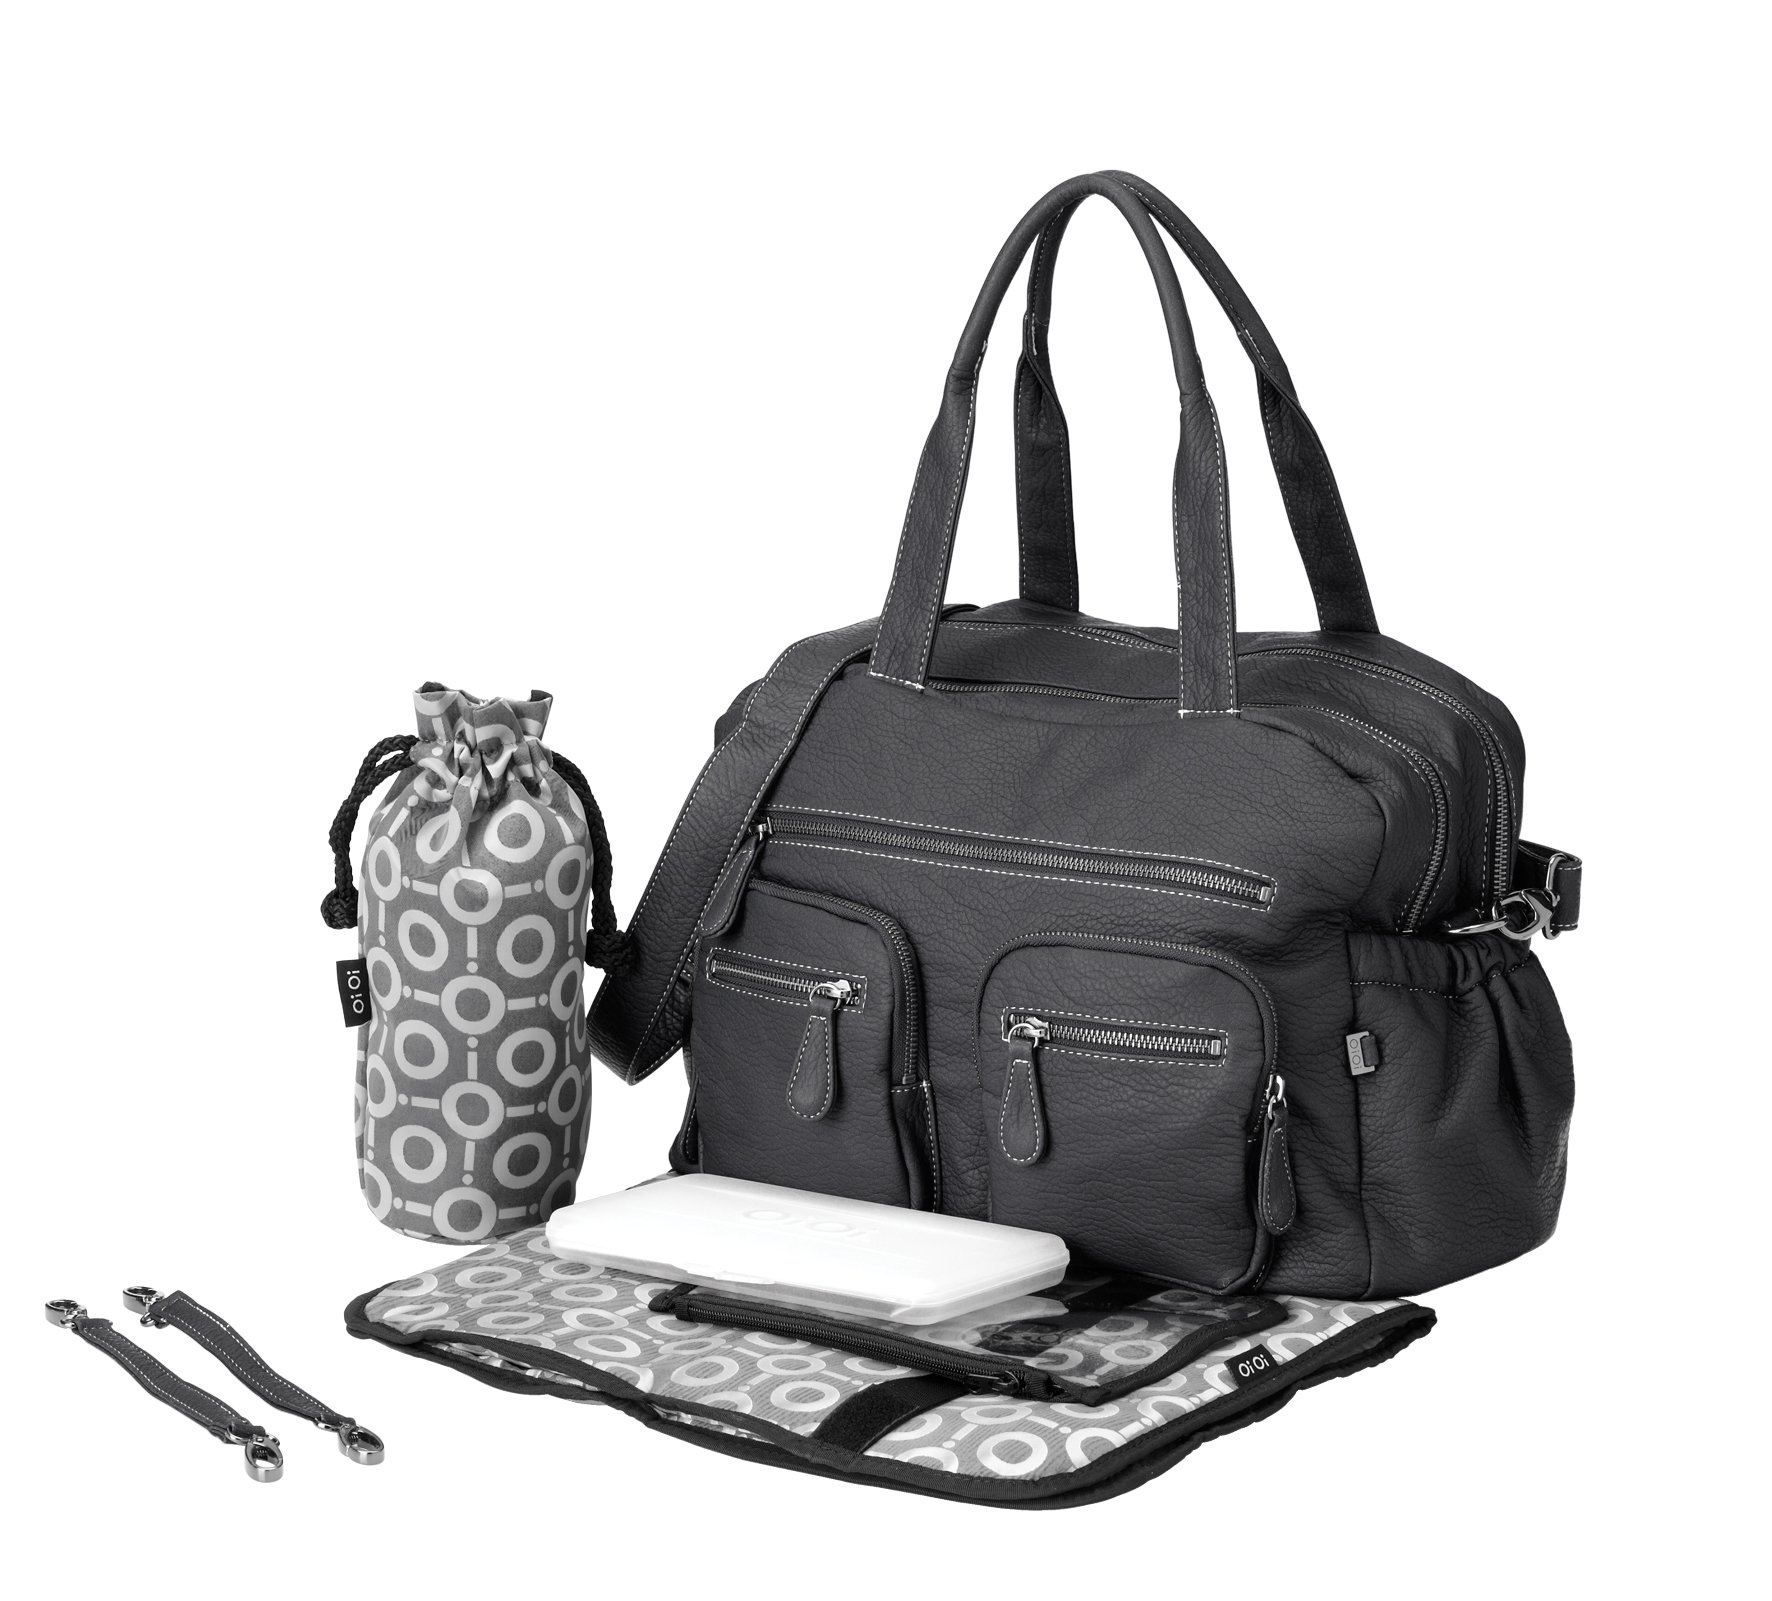 OiOi Faux Buffalo Carryall Diaper Bag, Charcoal